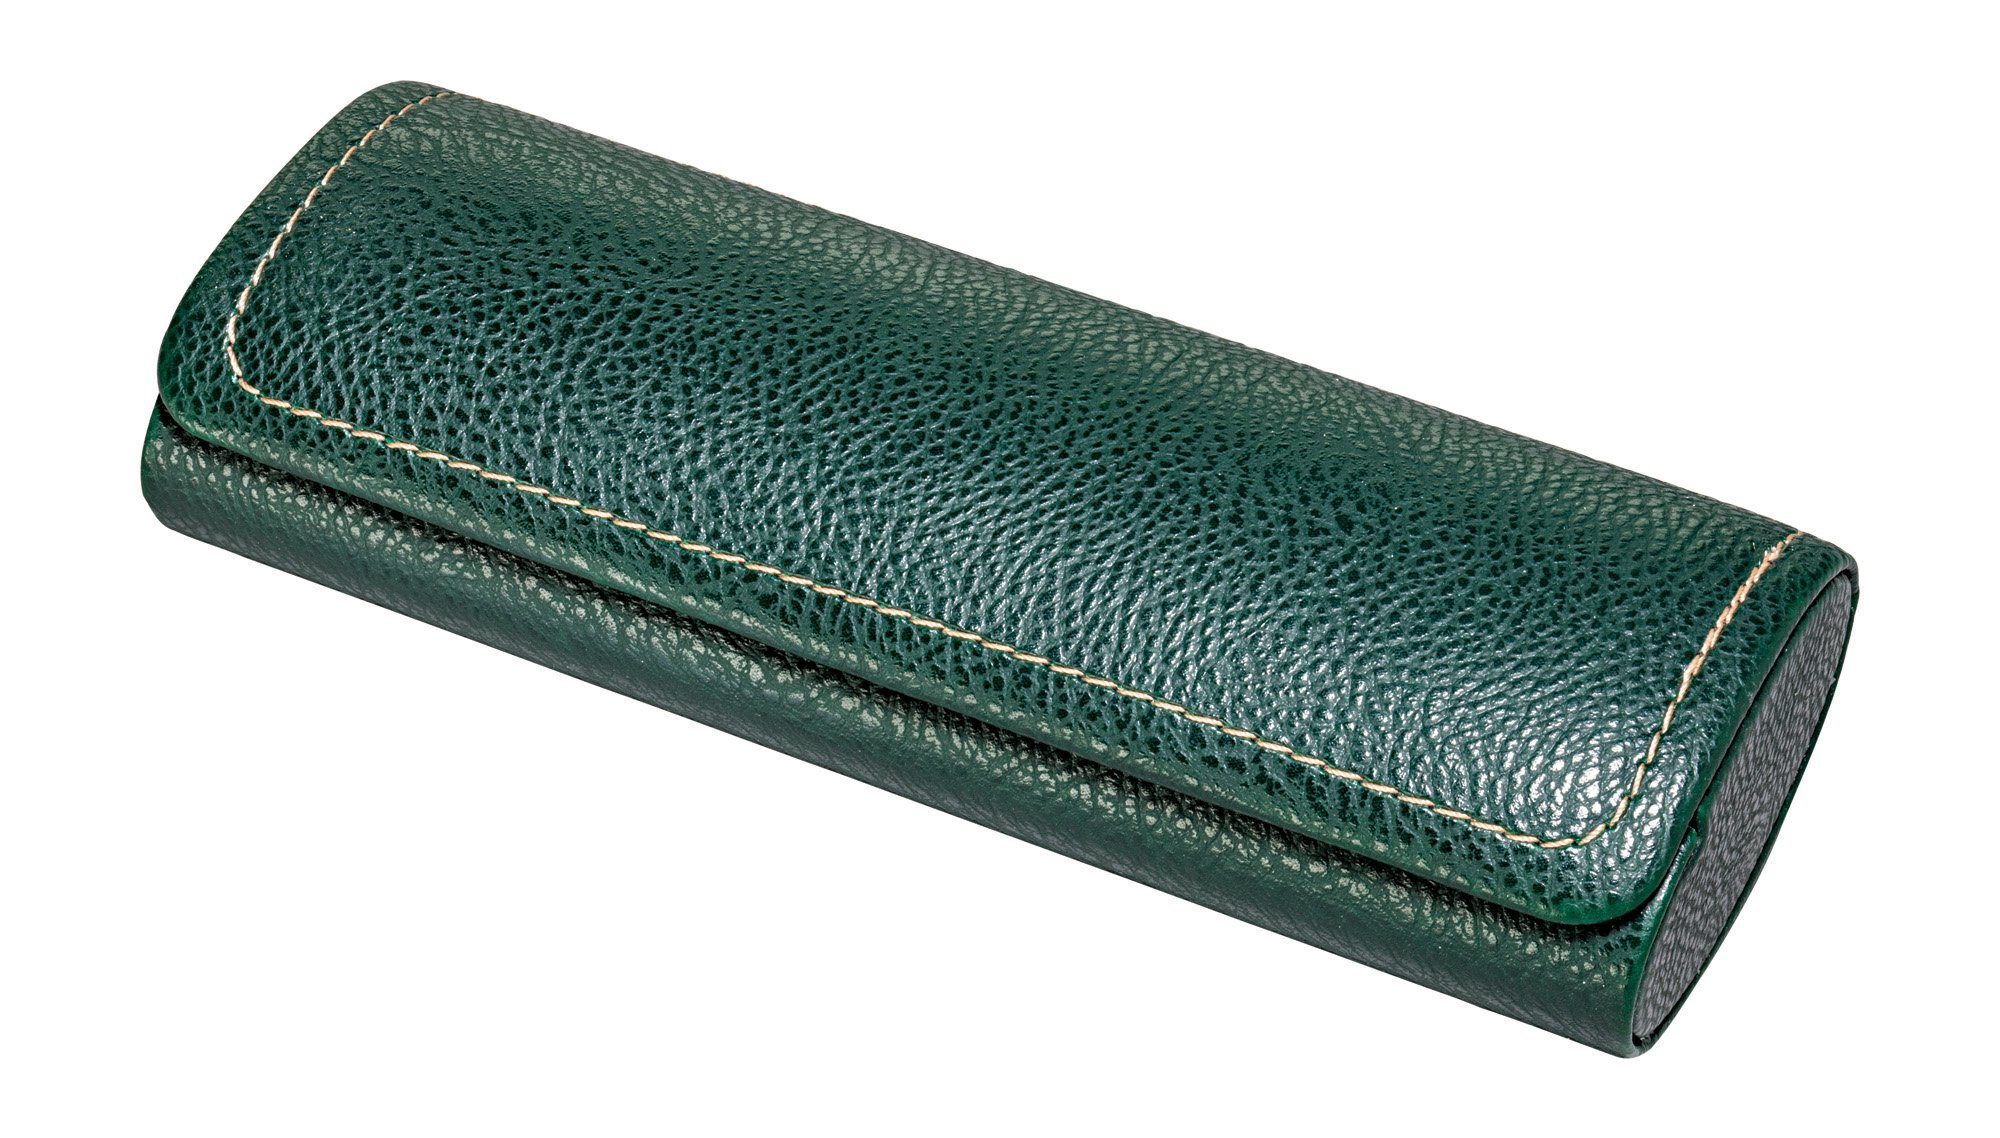 Glasses Case For Men, Women, Hard Eyeglass Case W/ Magnetic Closure In Faux Leather, Green